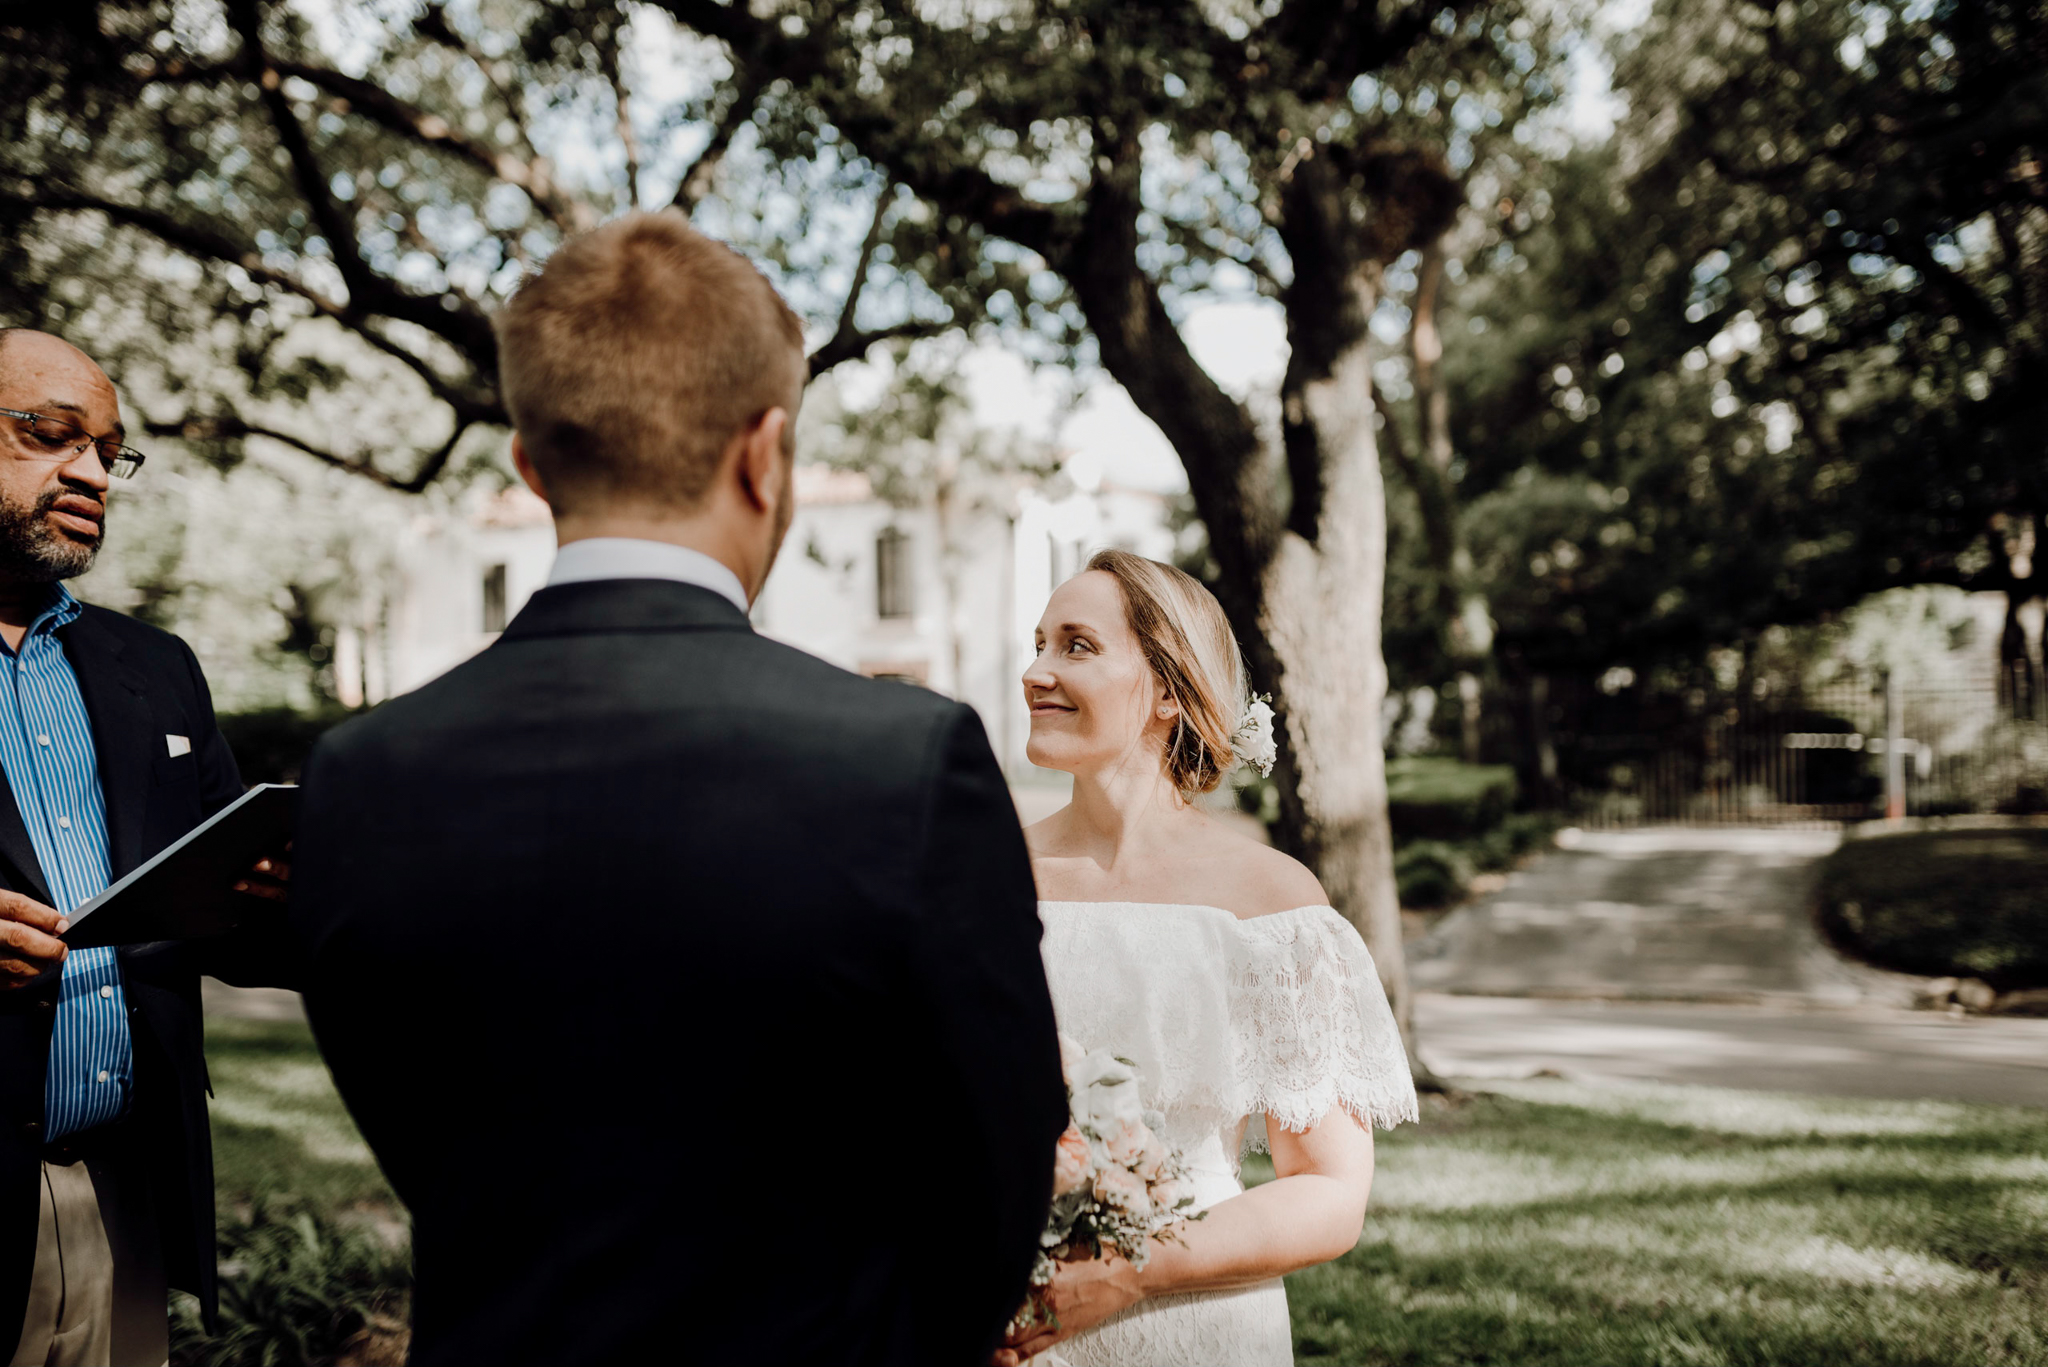 Houston Wedding Photographer-North Blvd Intimate Elopement- Houston Wedding Photographer -Kristen Giles Photography-22.jpg